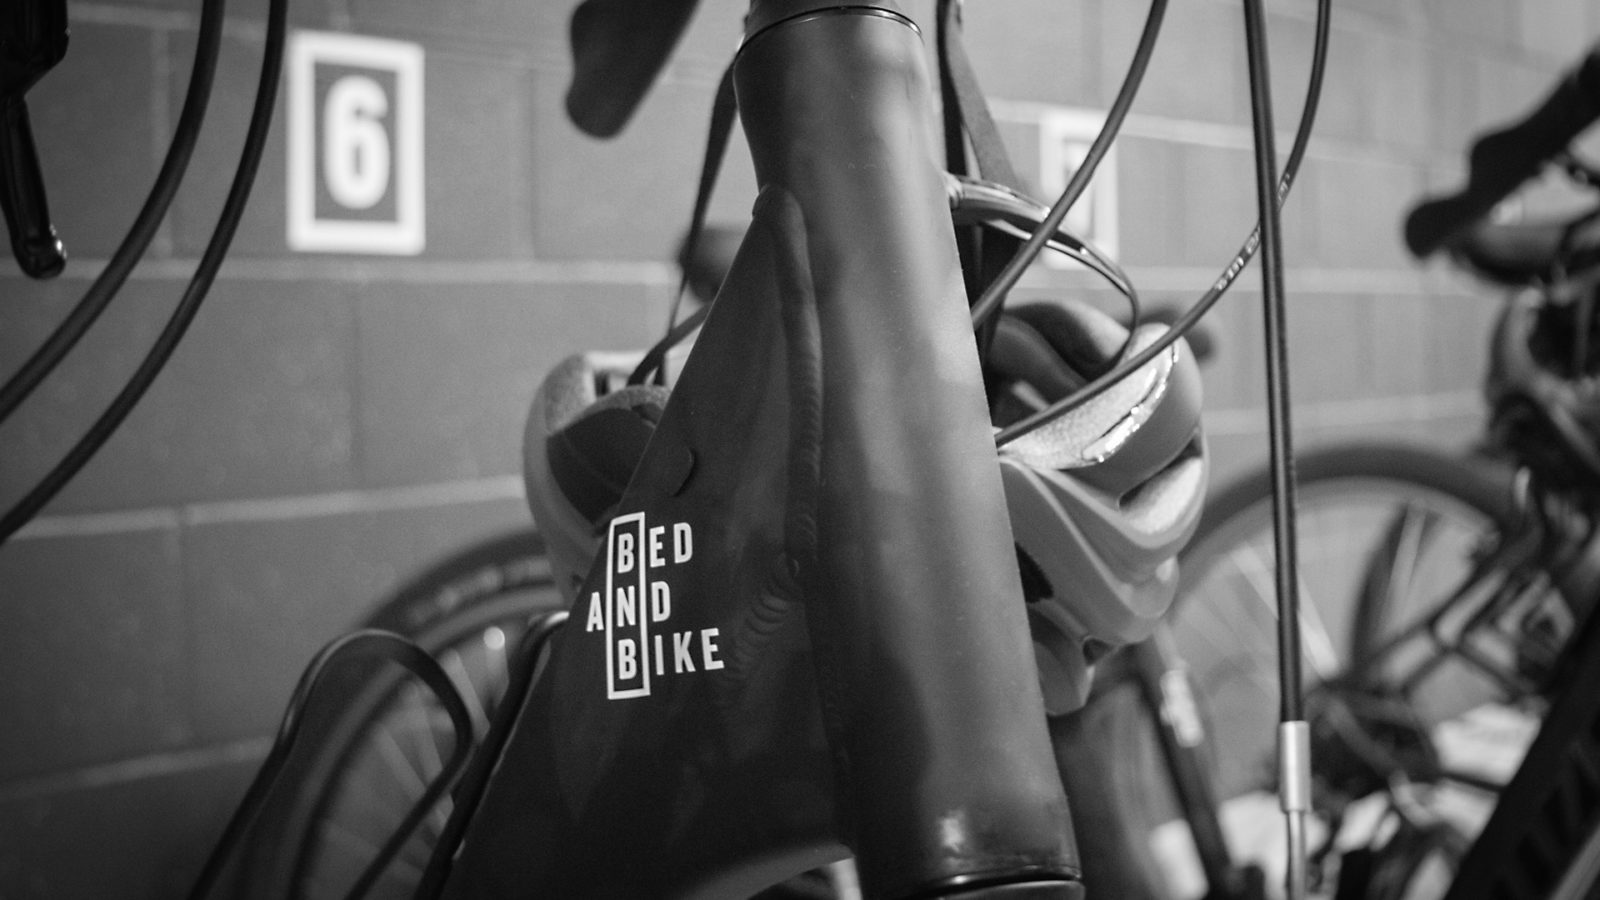 Bike Sticker for Boutique Hotel Branding for Bed and Bike